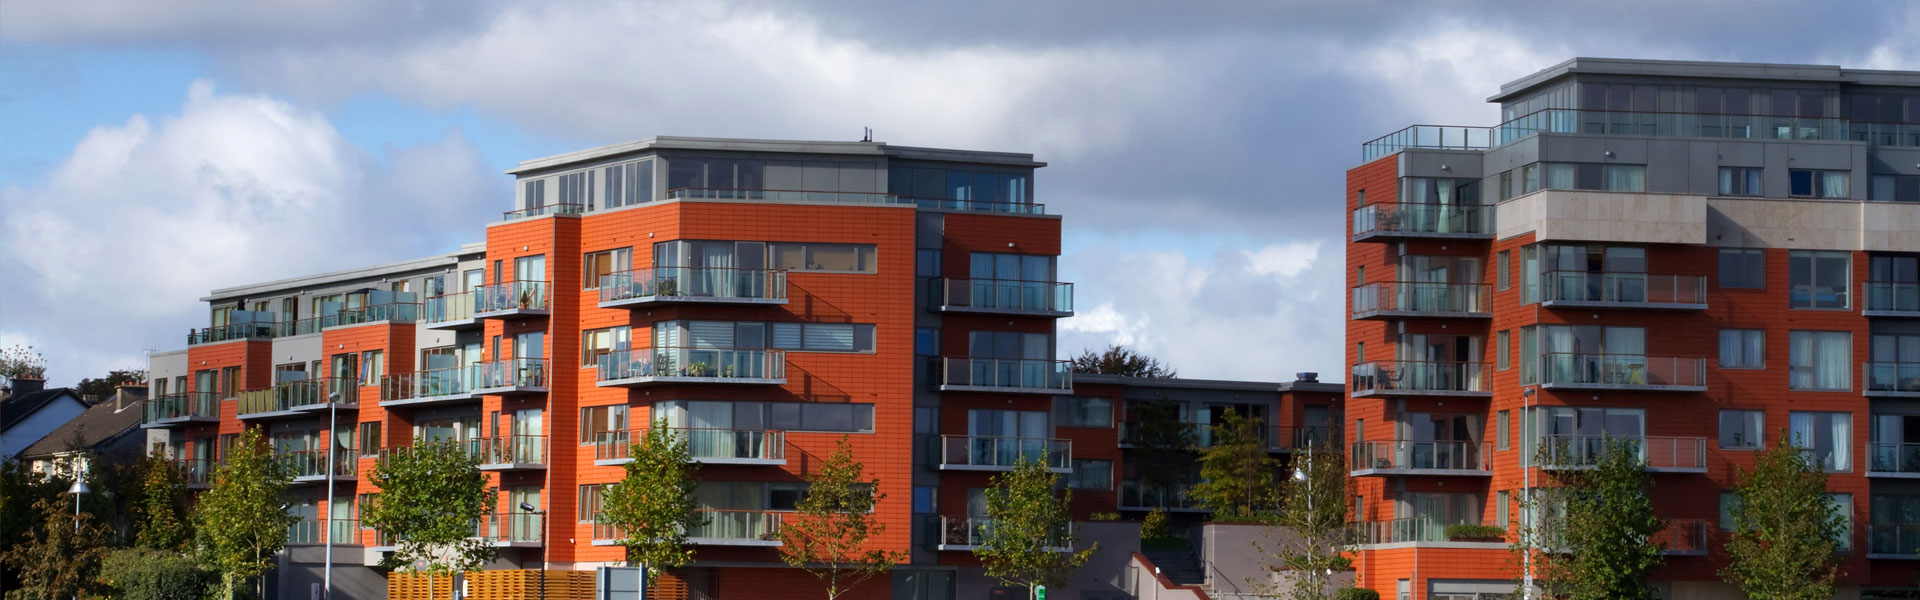 professional Commercial property management in Straffan